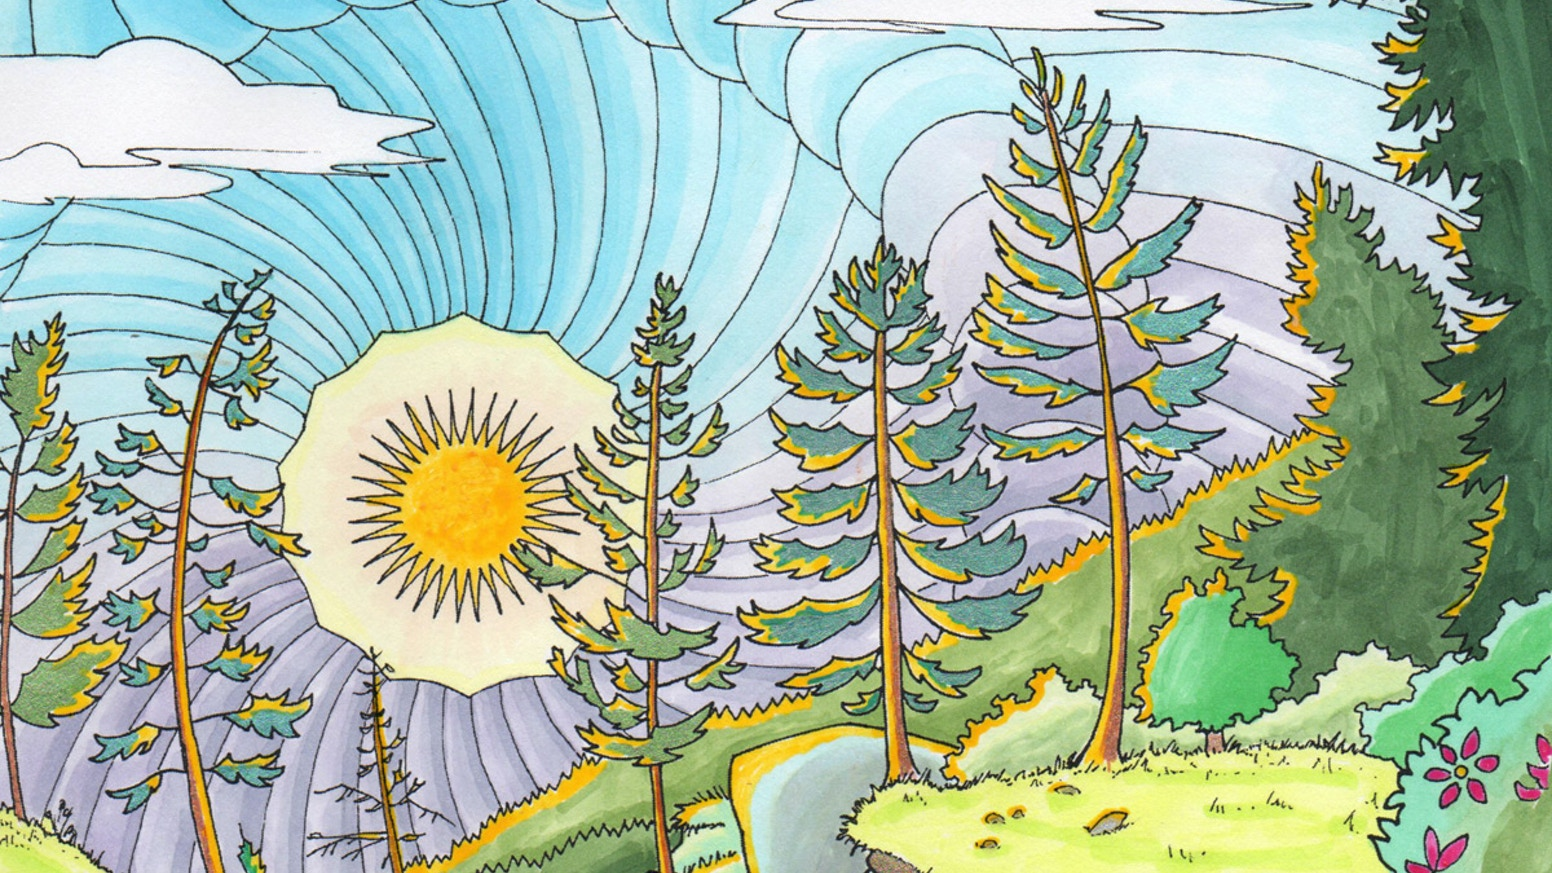 Legendary Landscapes: Adult Coloring Book by Carrie and Witek ...